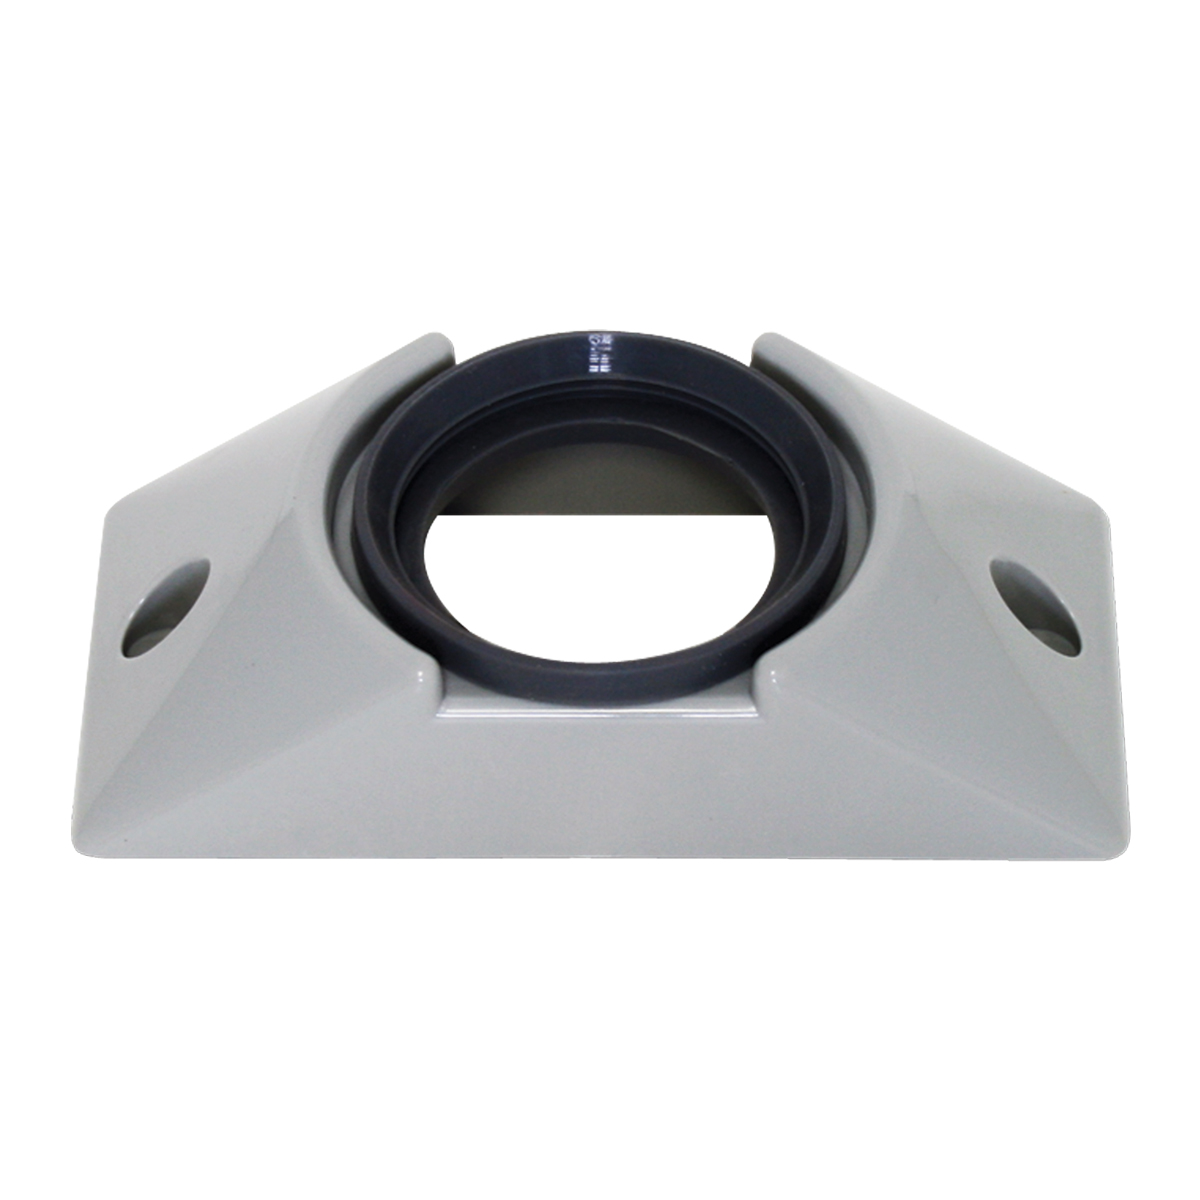 "82617 Gray Plastic Mounting Bracket with Grommet for 2"" Round Light"